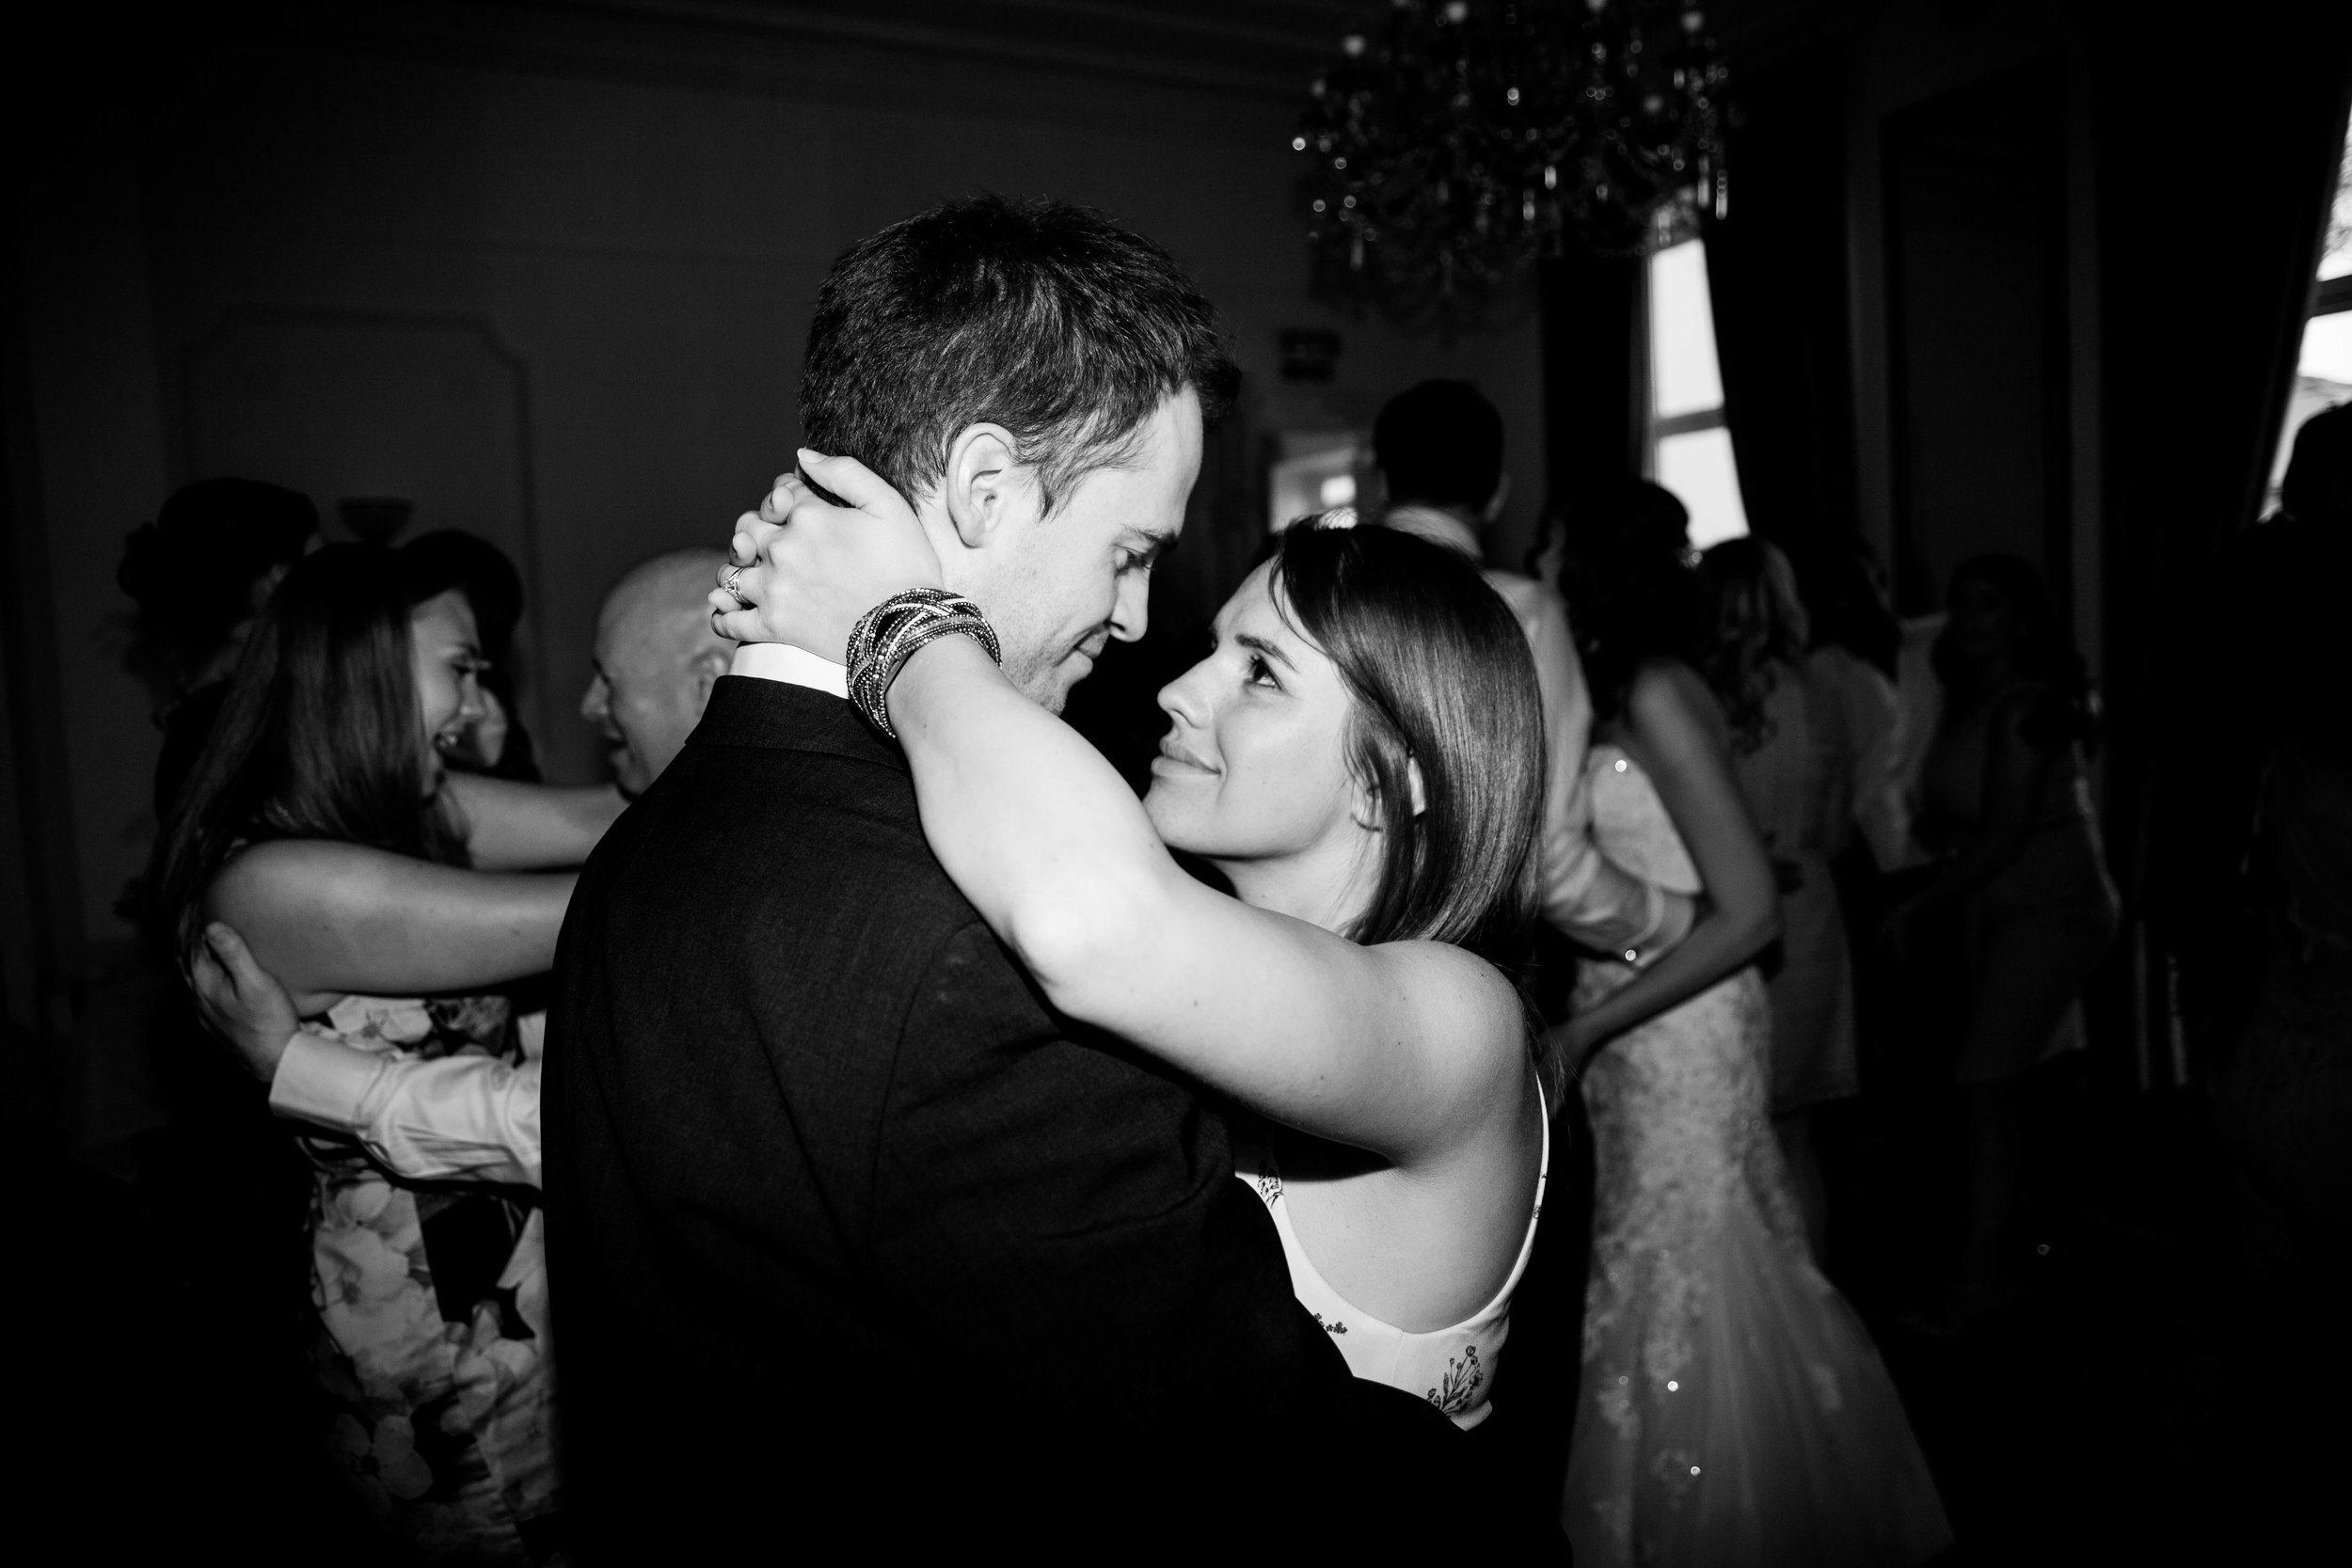 NLPhotography_Taplow_House-Wedding_Photographer_Emily&Alan_BnW-559.jpg